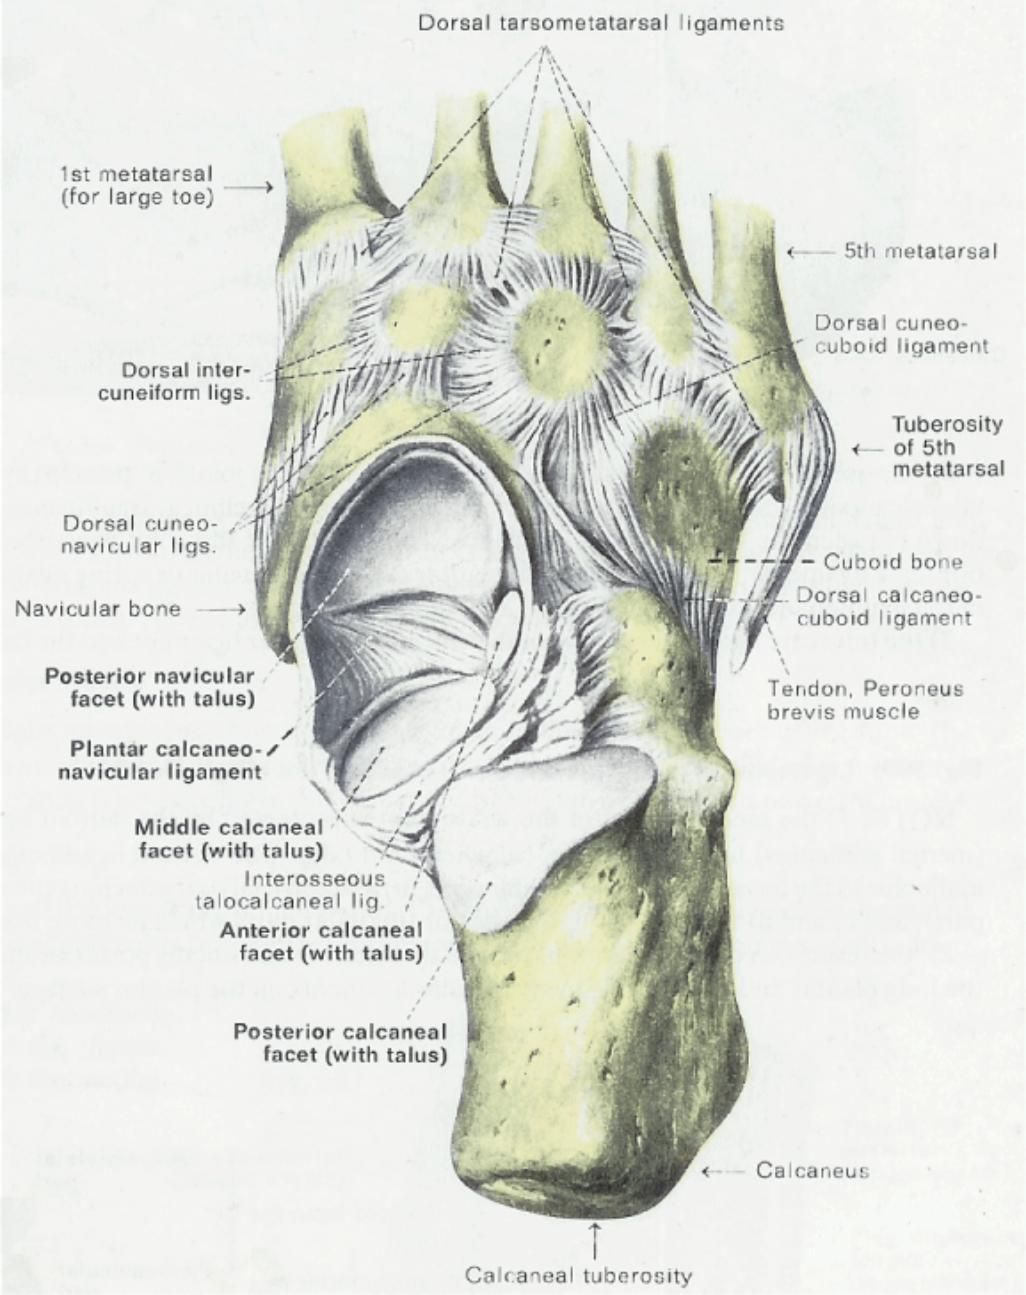 Anatomy & Physiology Illustration | Anatomia | Pinterest | Anatomy